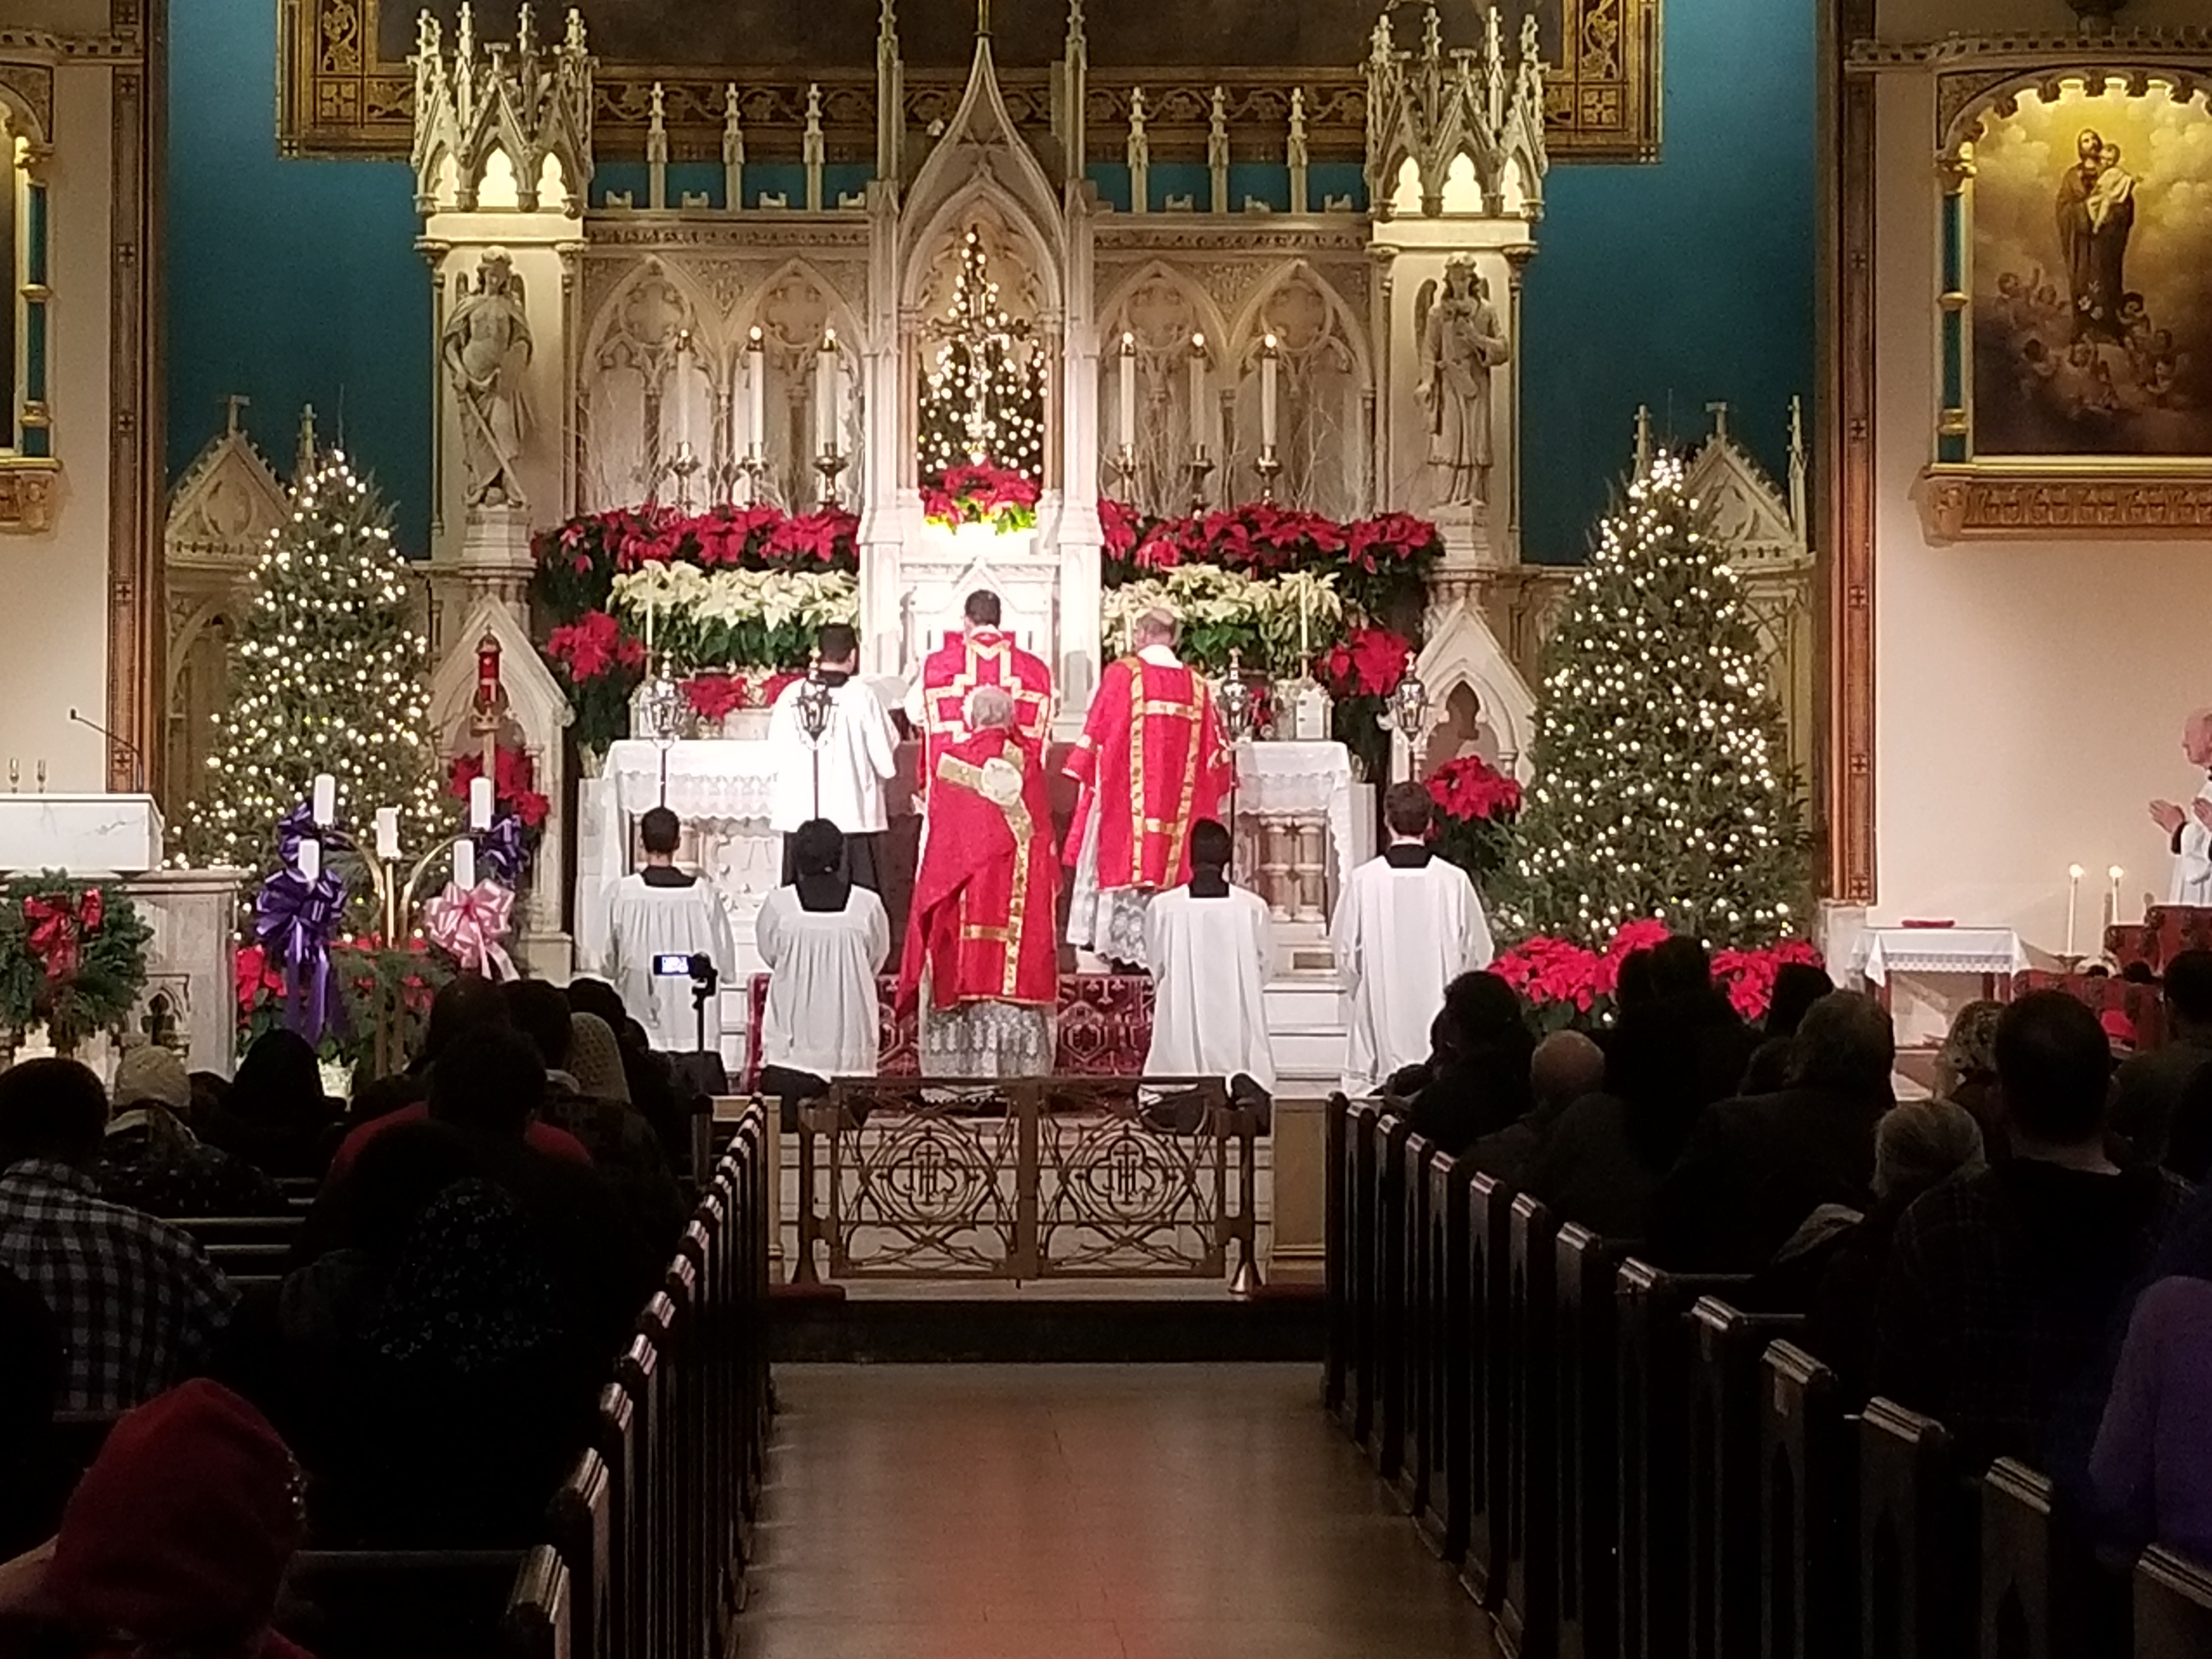 Ecclesia Dei Commission for the Latin Mass to be extinguished